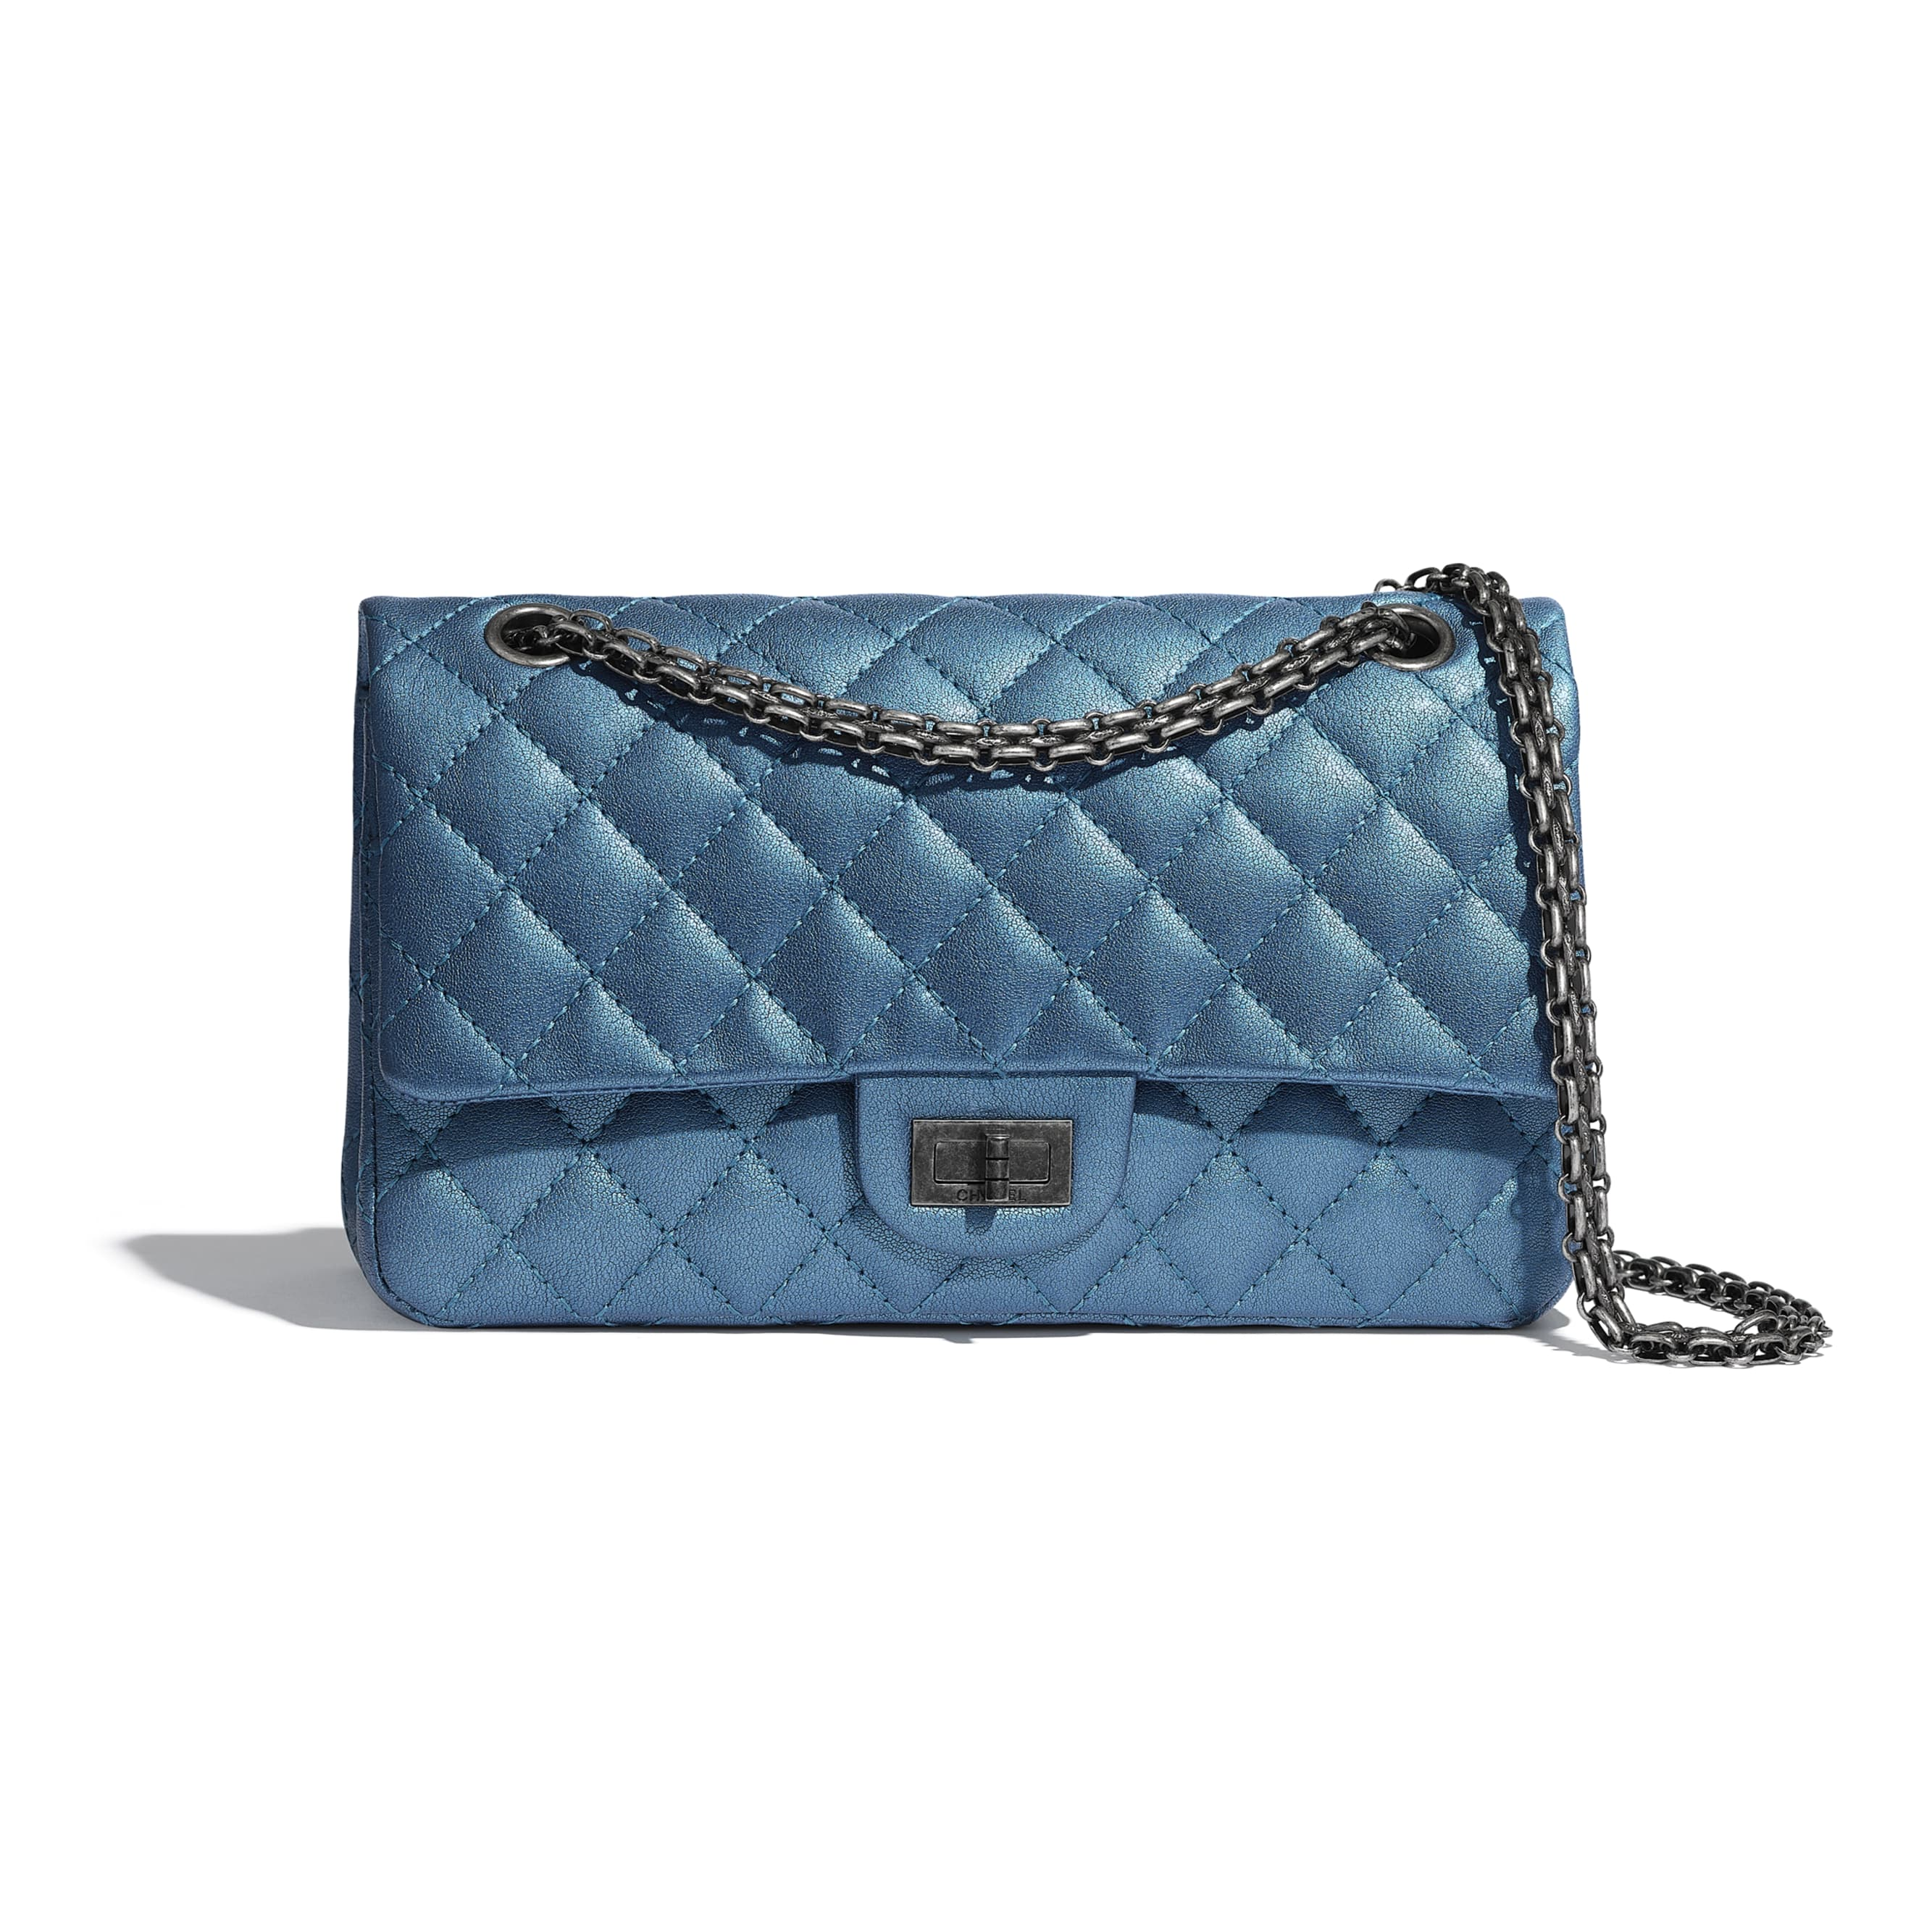 2.55 Handbag - Blue - Metallic Sheepskin & Ruthenium-Finish Metal - Default view - see standard sized version